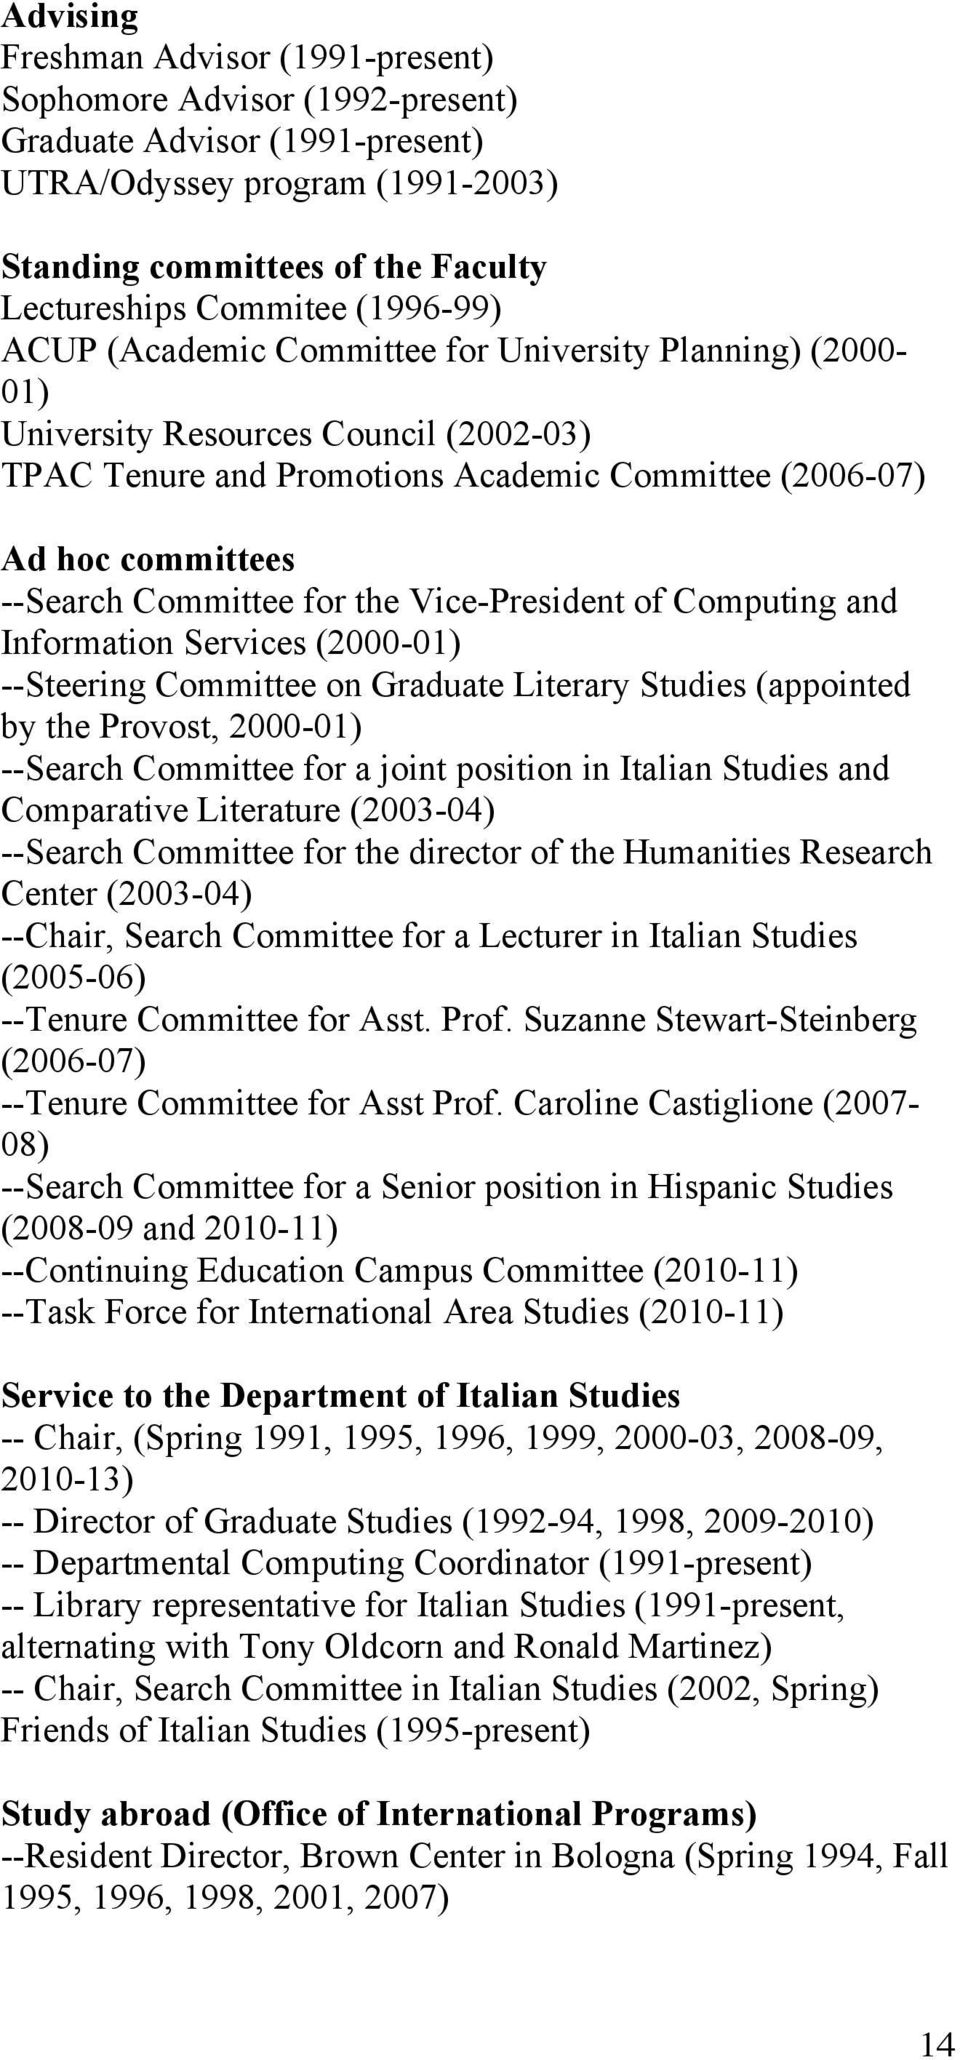 Committee for the Vice-President of Computing and Information Services (2000-01) --Steering Committee on Graduate Literary Studies (appointed by the Provost, 2000-01) --Search Committee for a joint